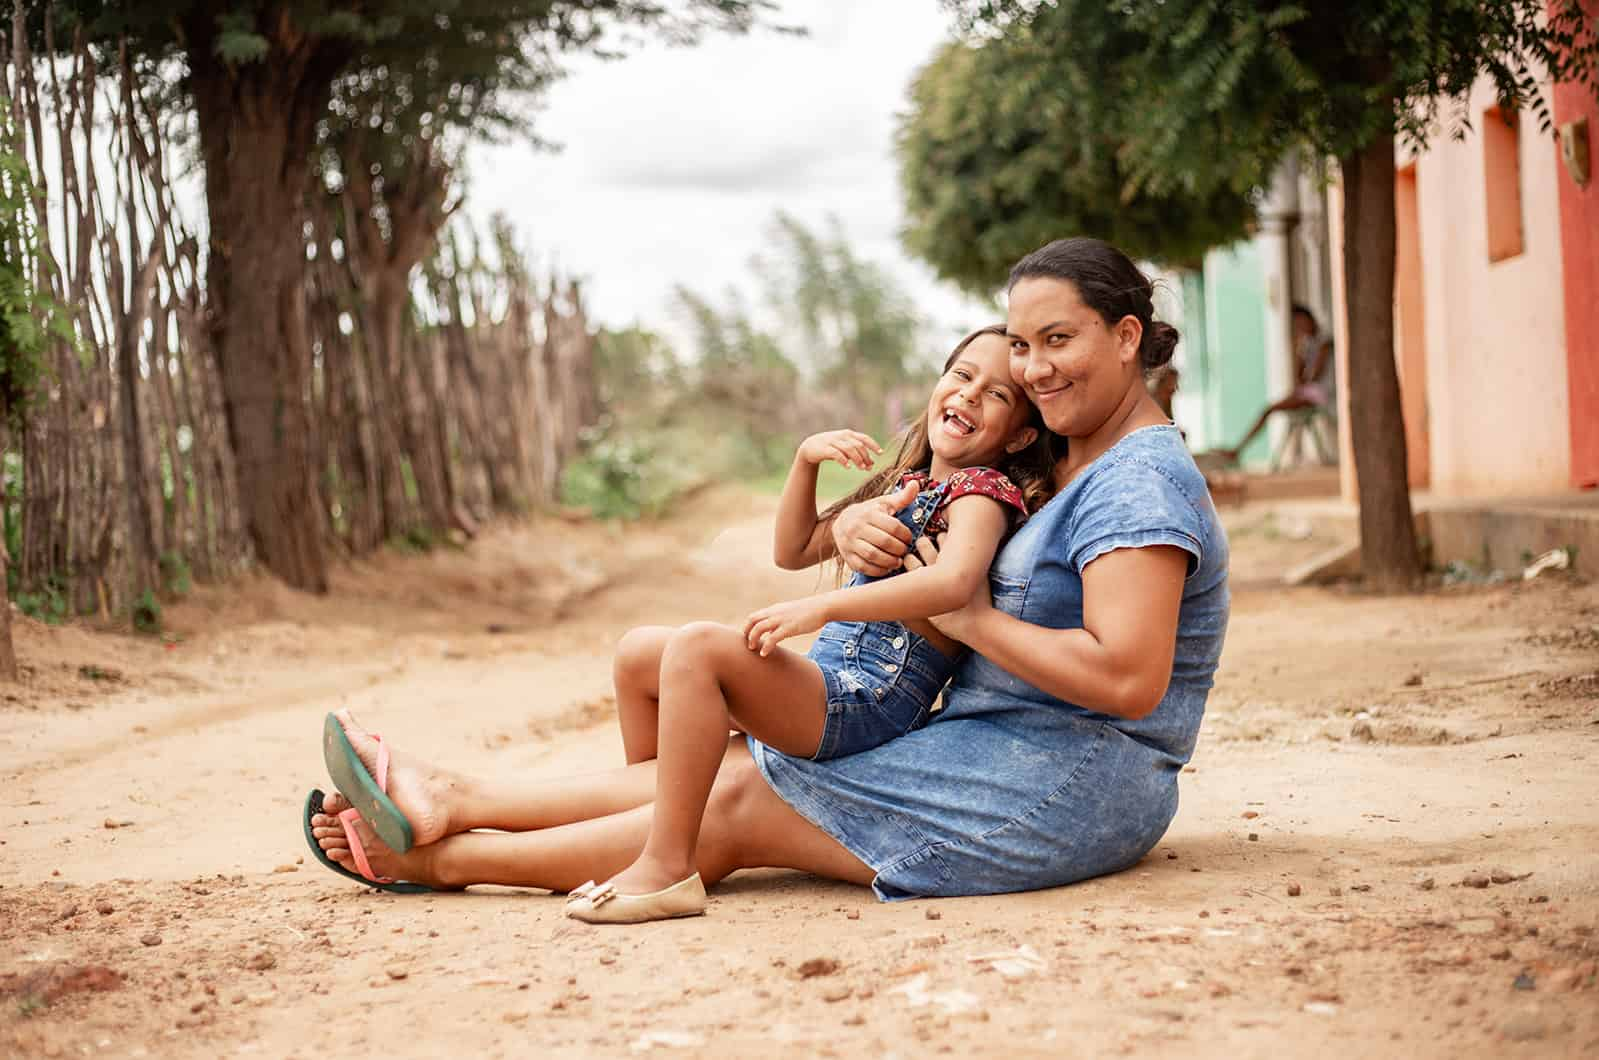 Happy mother and daughter sitting on the ground